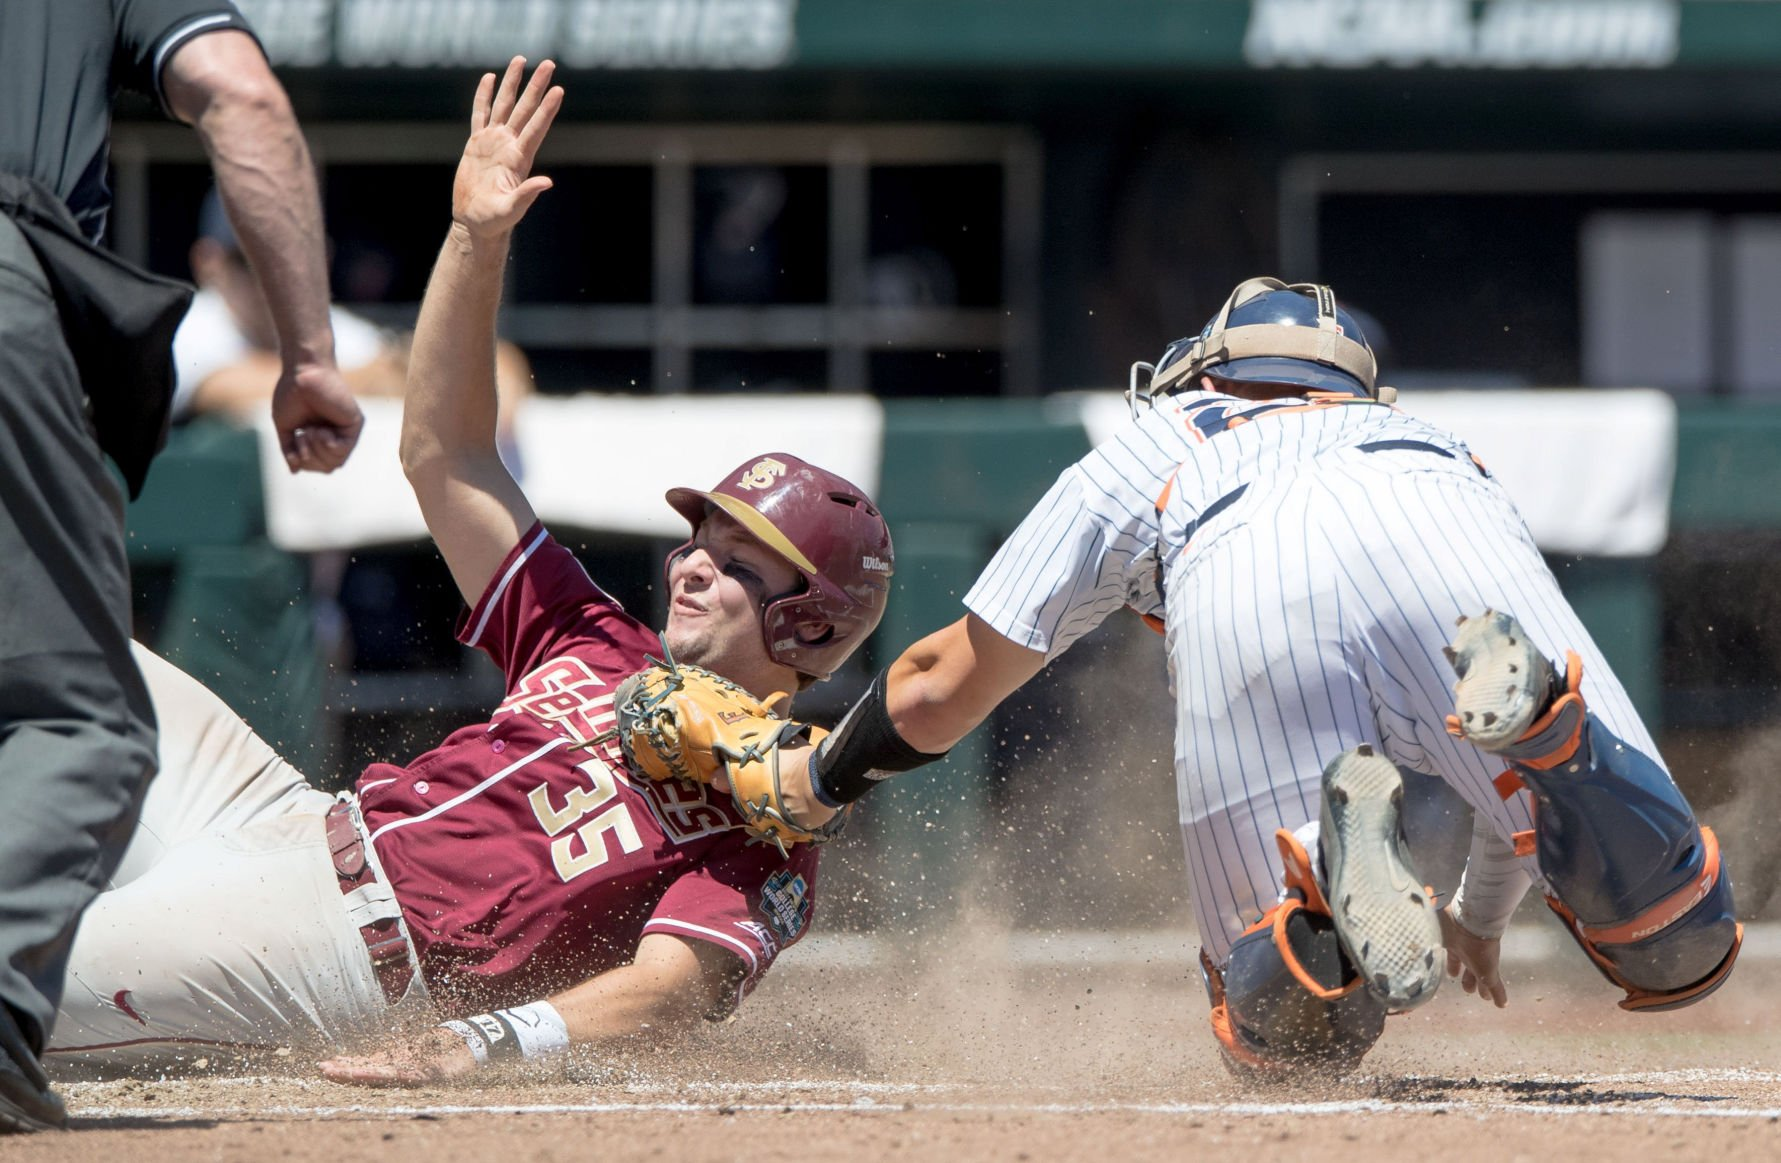 Florida State eliminates Cal State from CWS